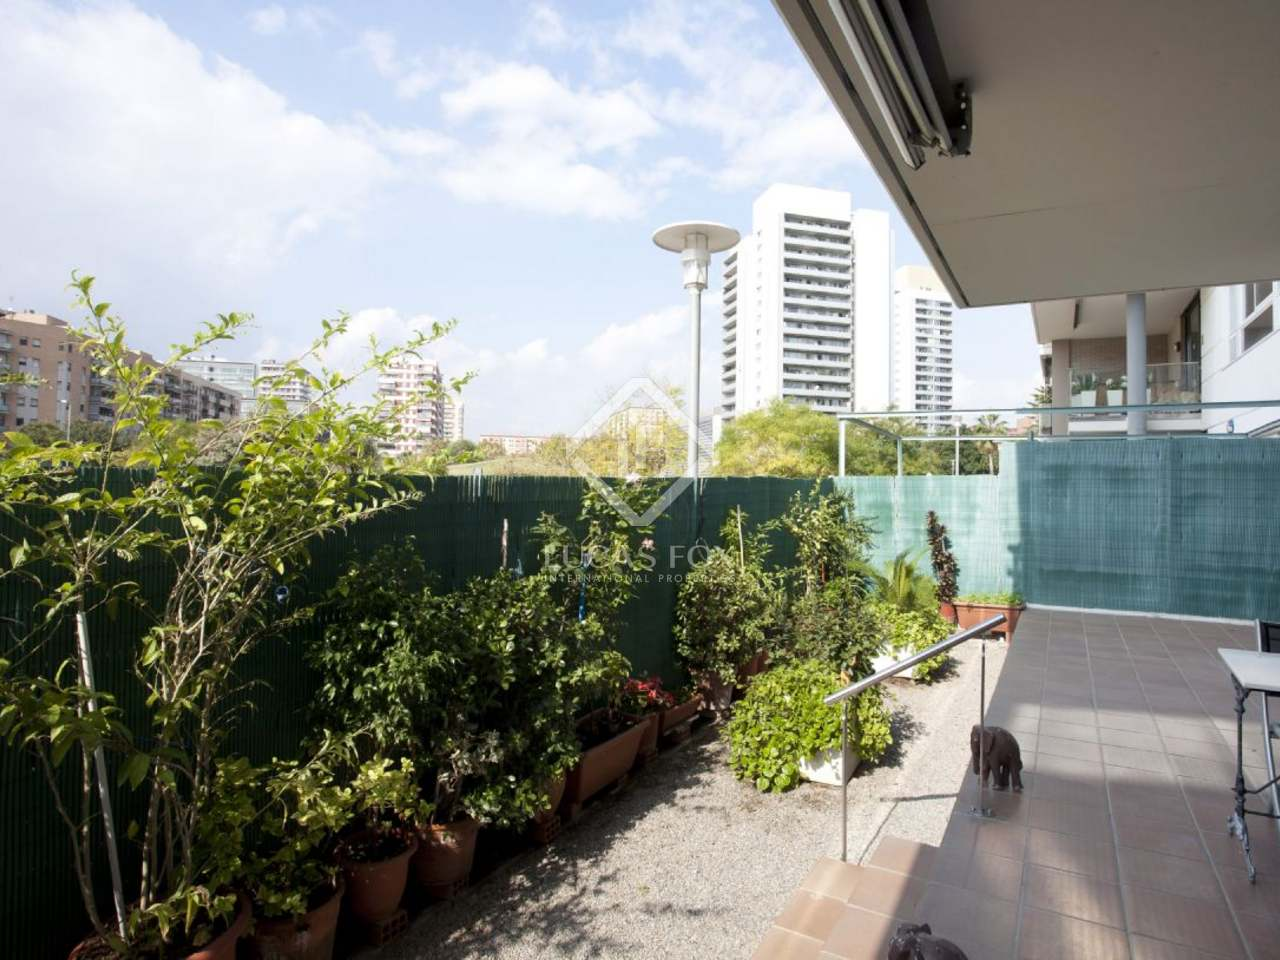 Appartement moderne en vente diagonal mar barcelone for Appartement piscine barcelone